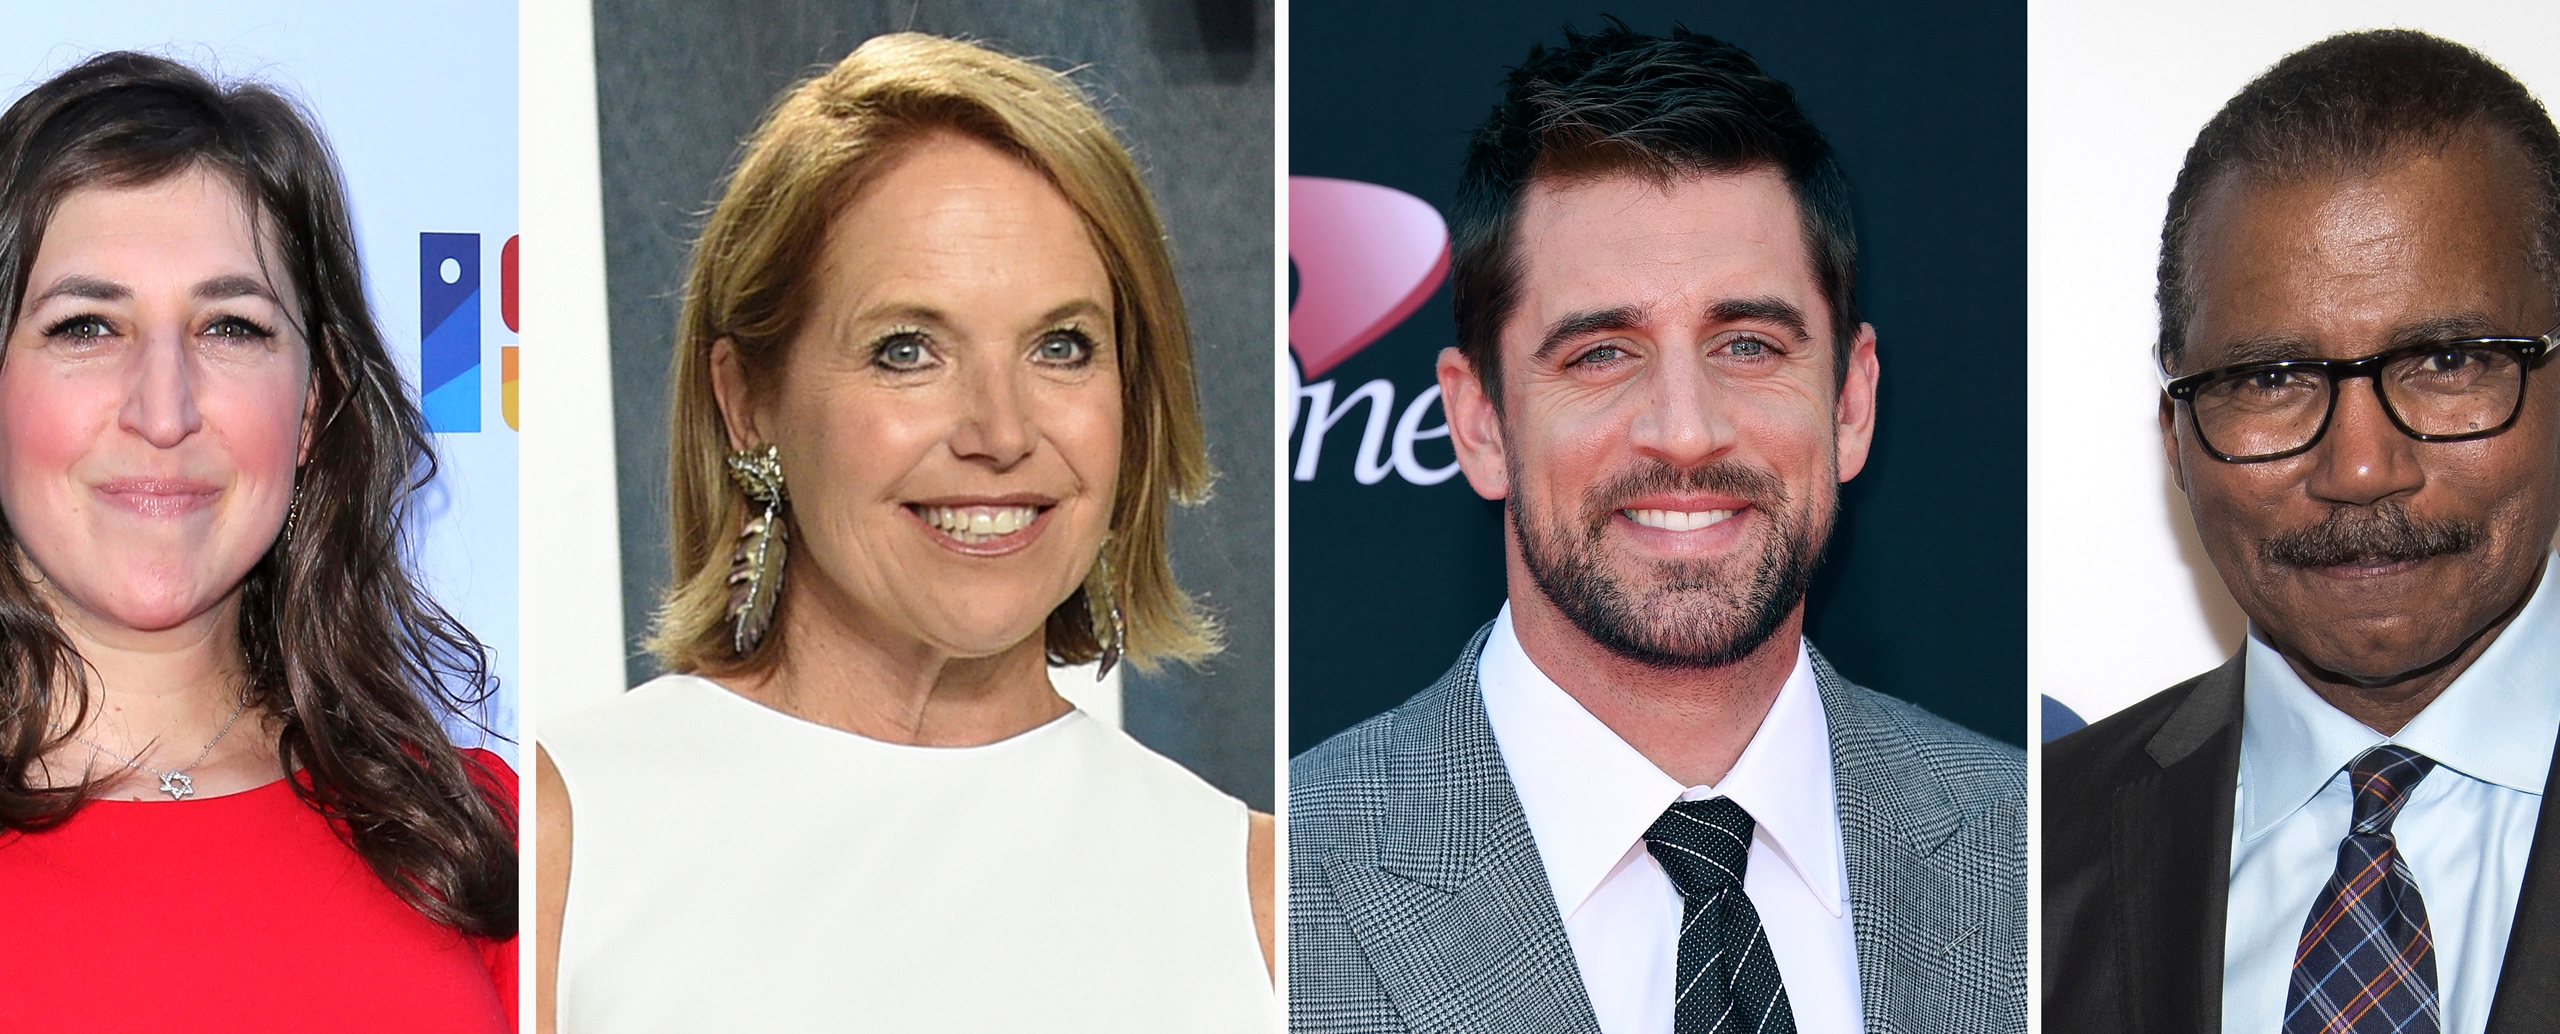 Mayim Bialik, Katie Couric, Aaron Rodgers, Bill Whitaker